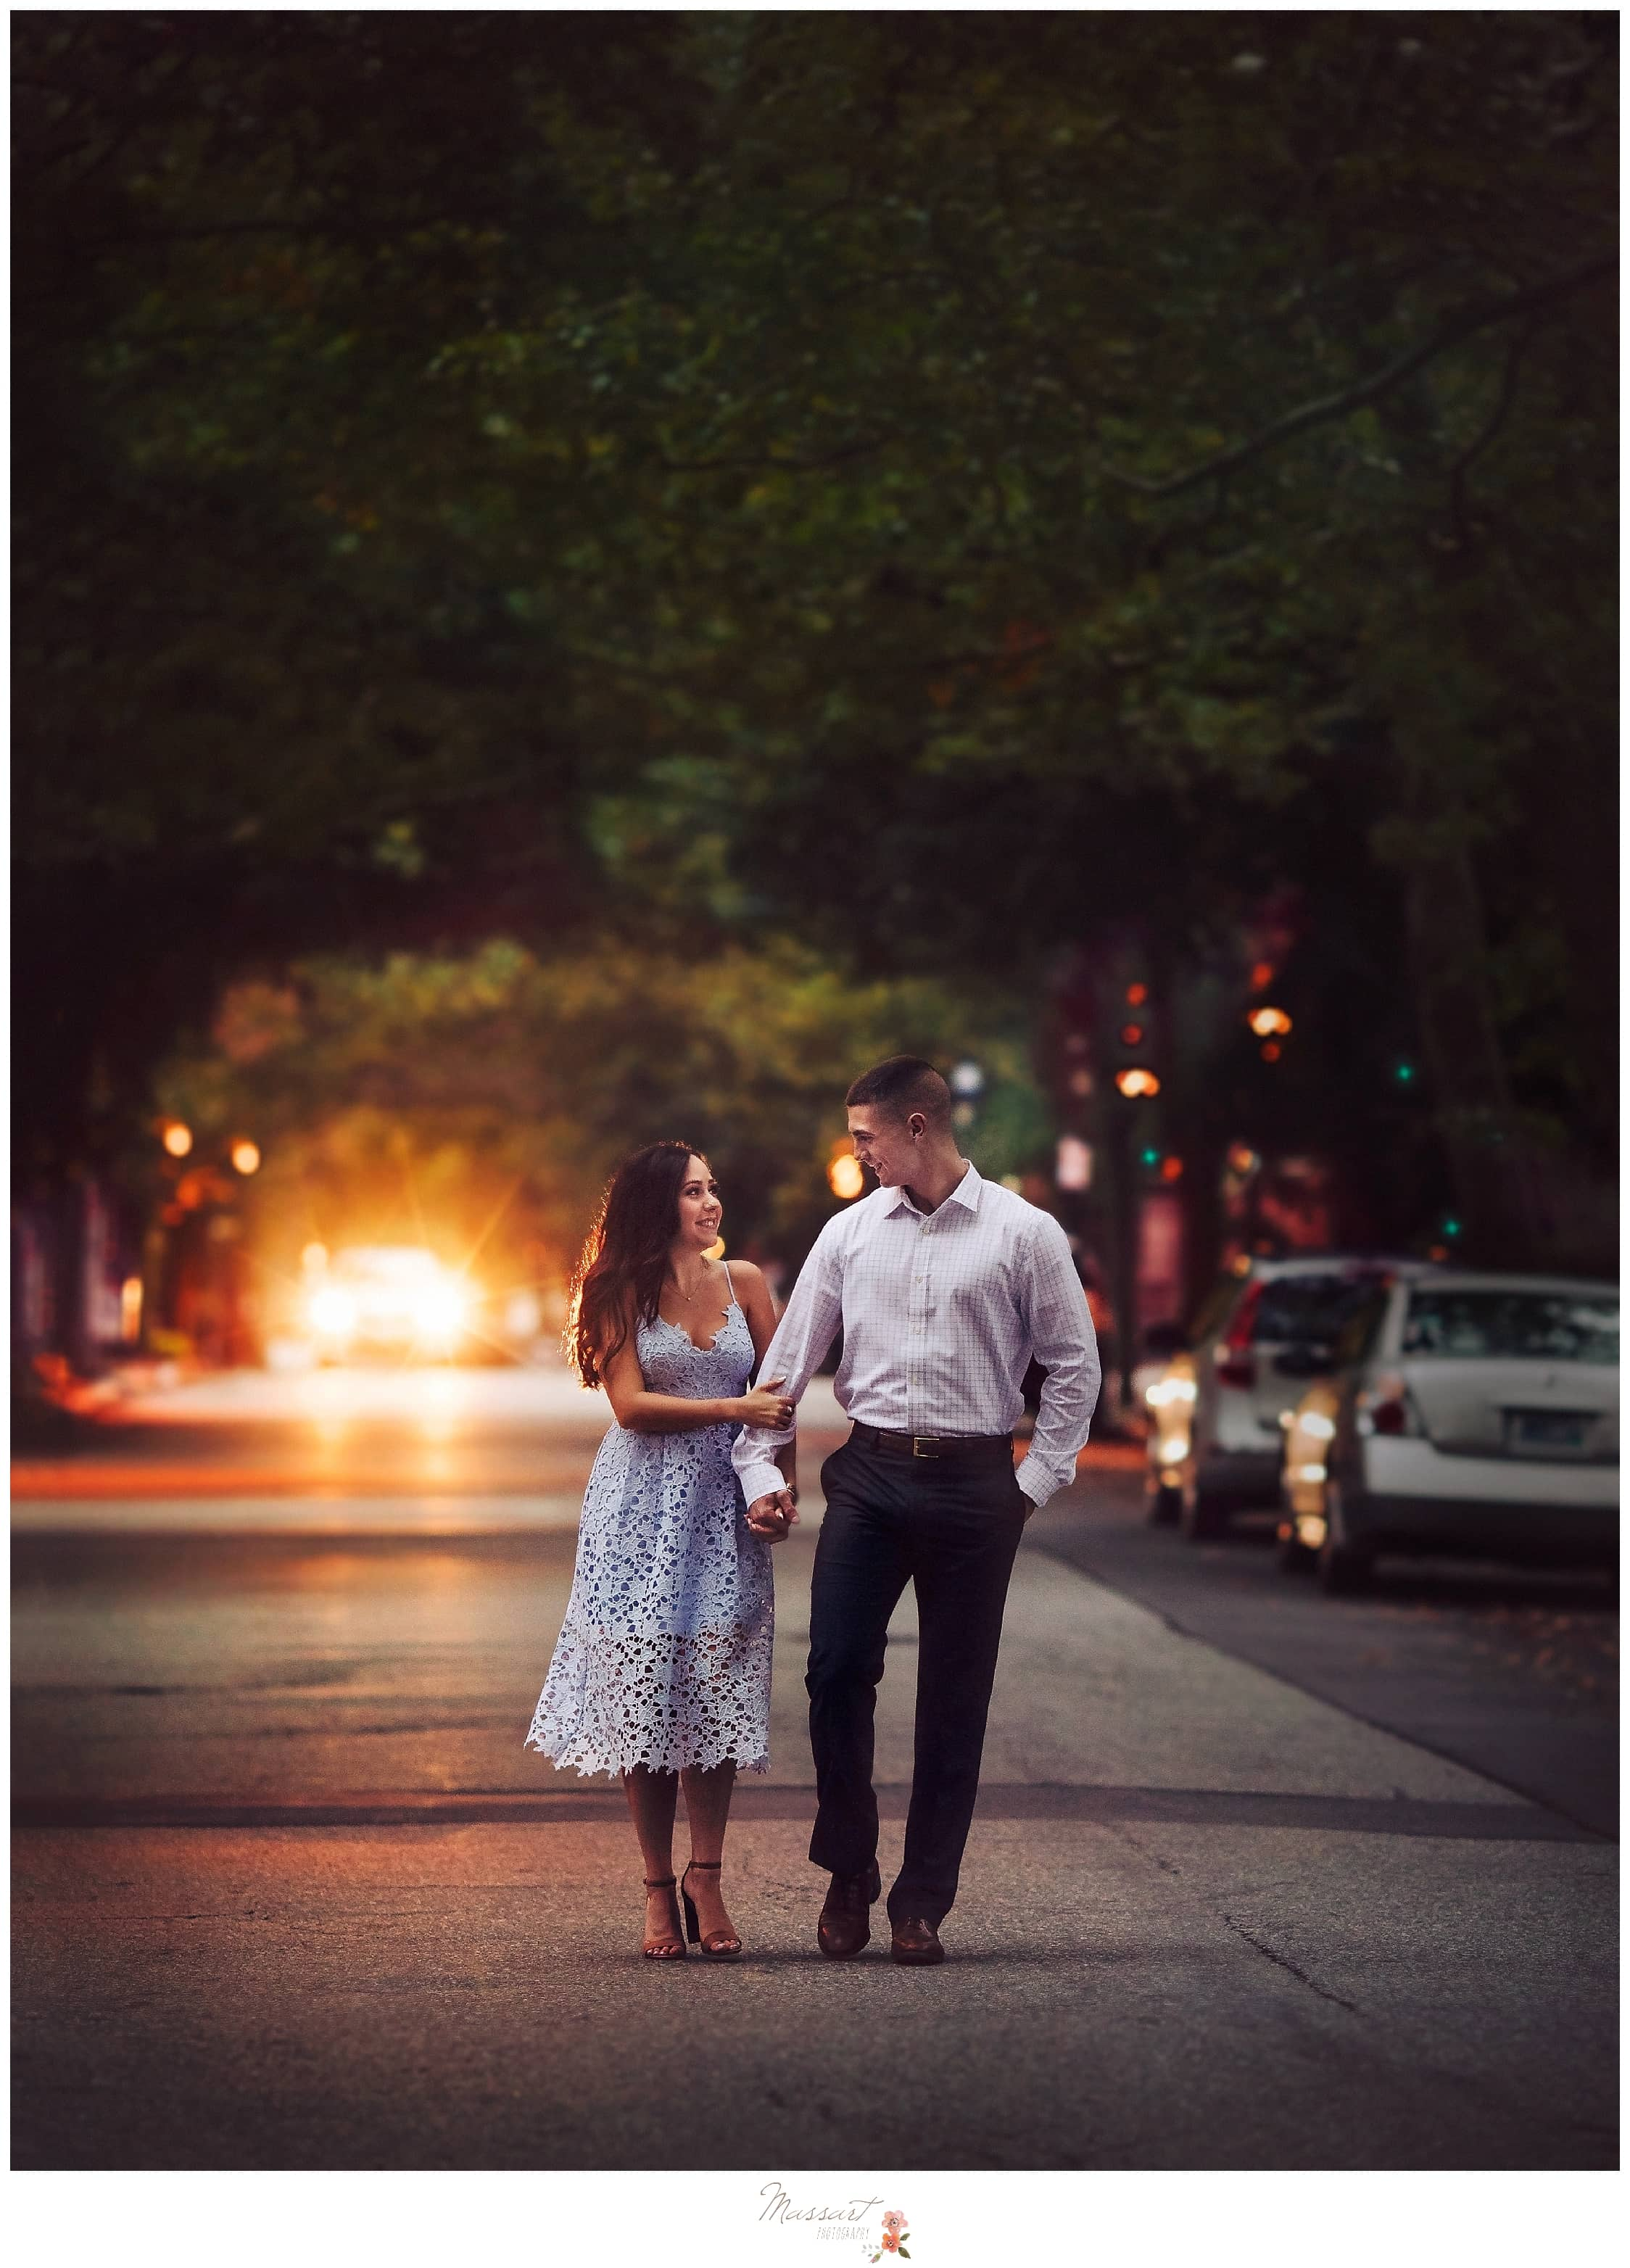 An image from an engagement session in Providence, Rhode Island captured by Massart Photography of RI